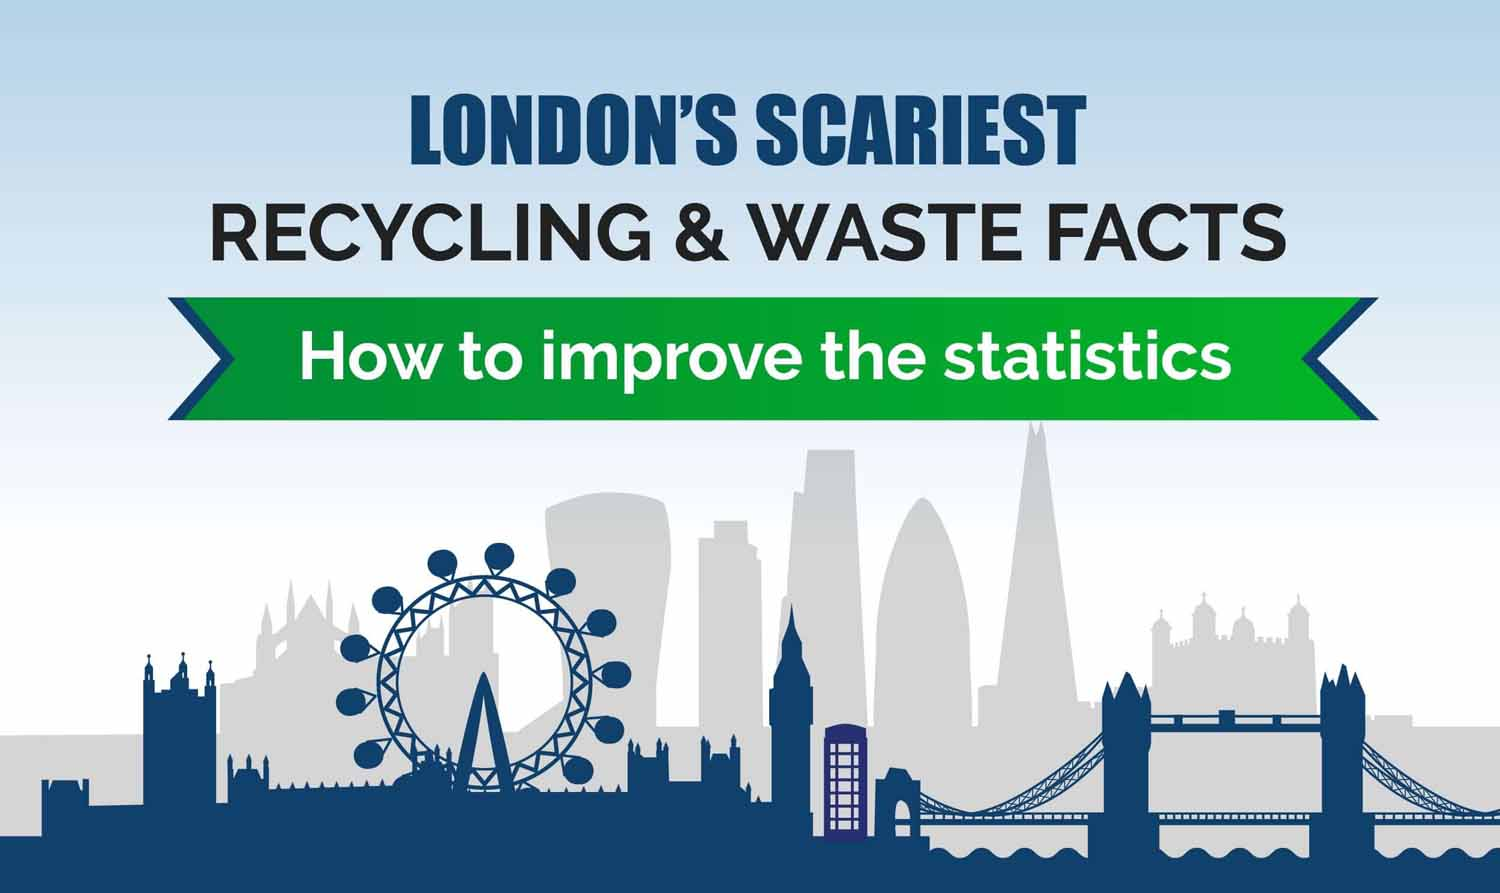 London's Scariest Recycling & Waste Facts & How to Improve Them